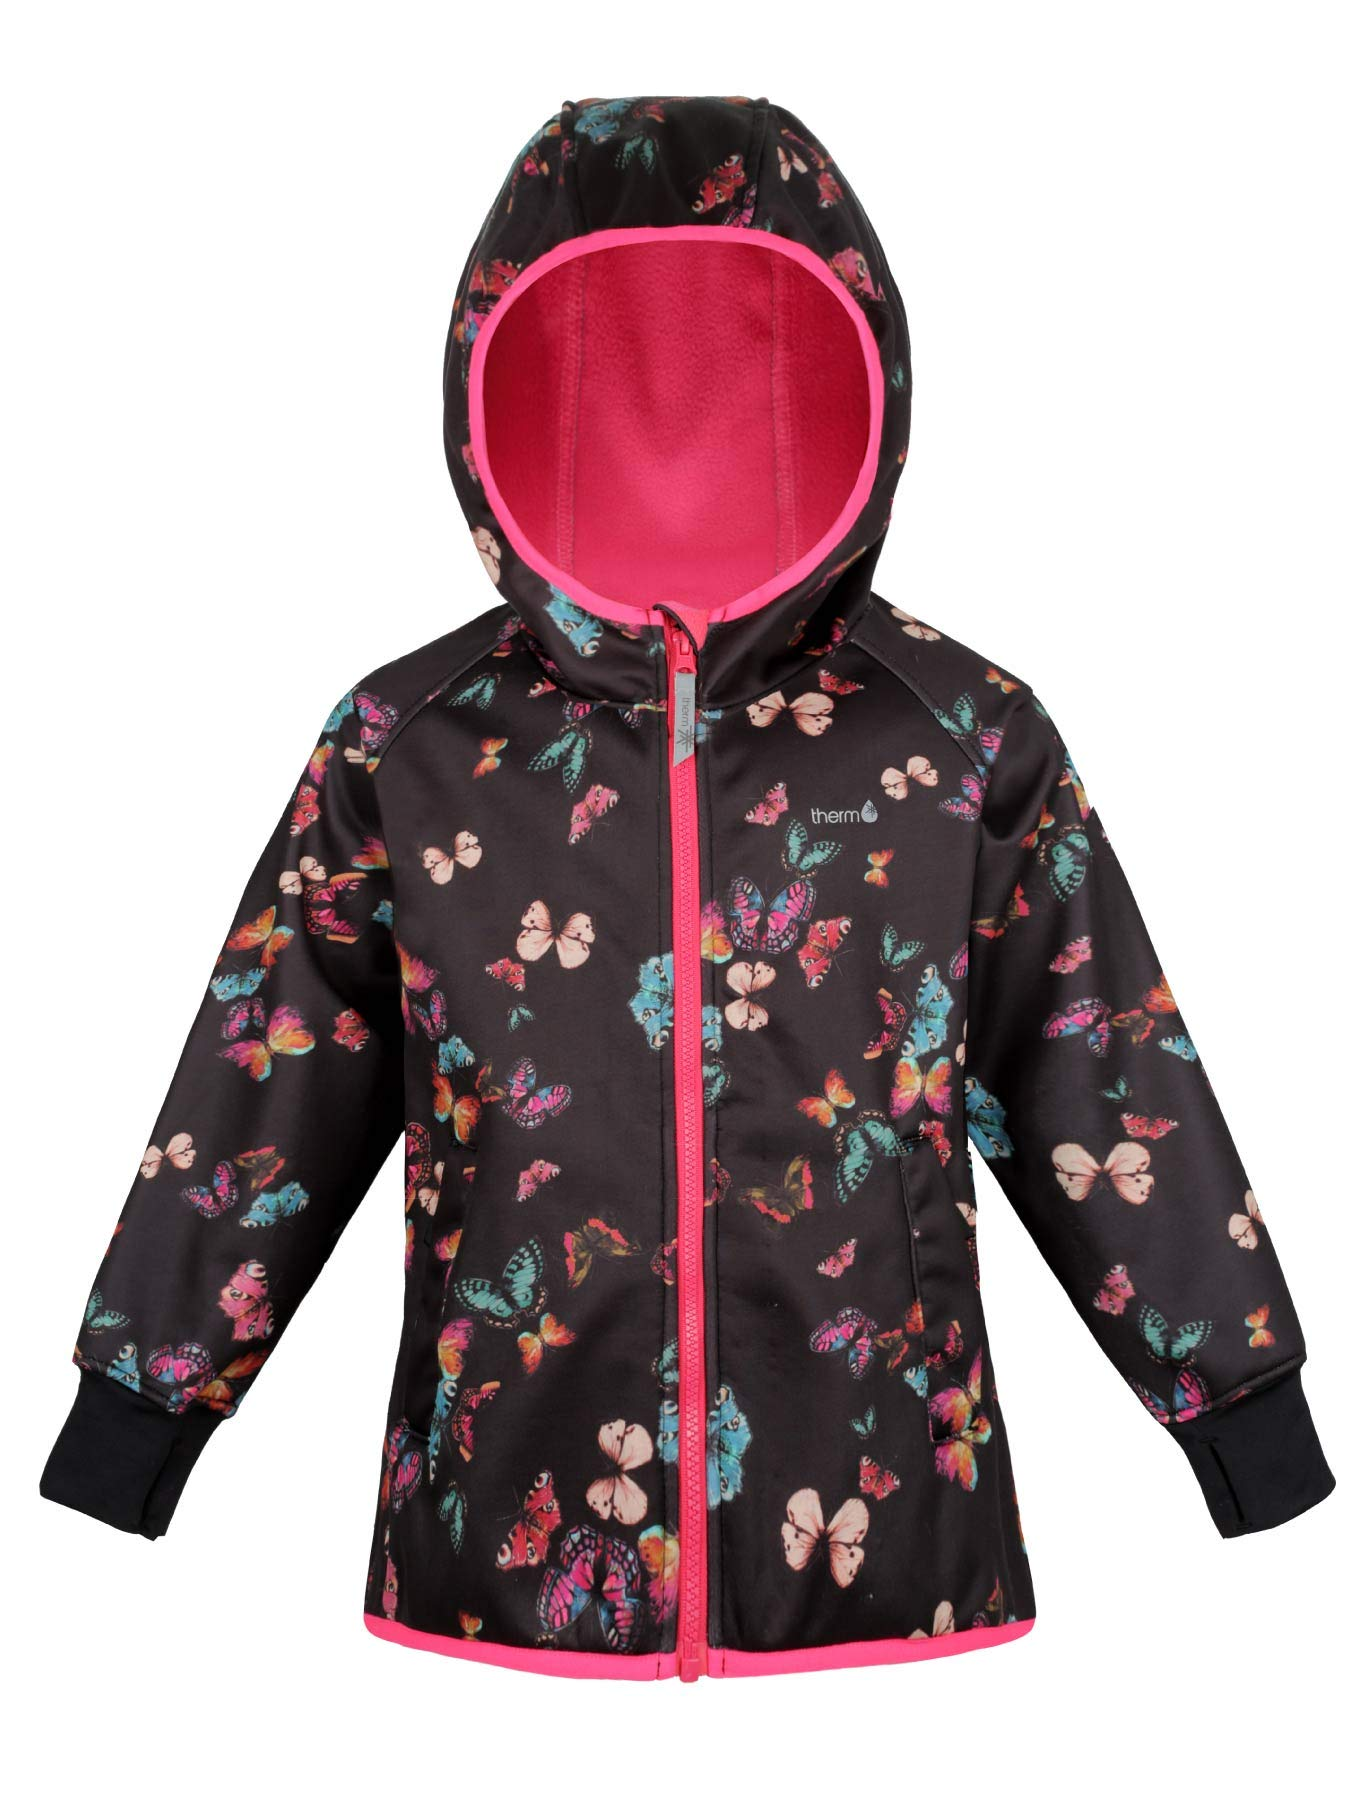 Therm Girls Rain Jacket, Lightweight Winter Raincoat - Eco Friendly Fabric, Fleece Lined - Toddler Kids Youth Clothes (10, Butterfly Print) by Therm